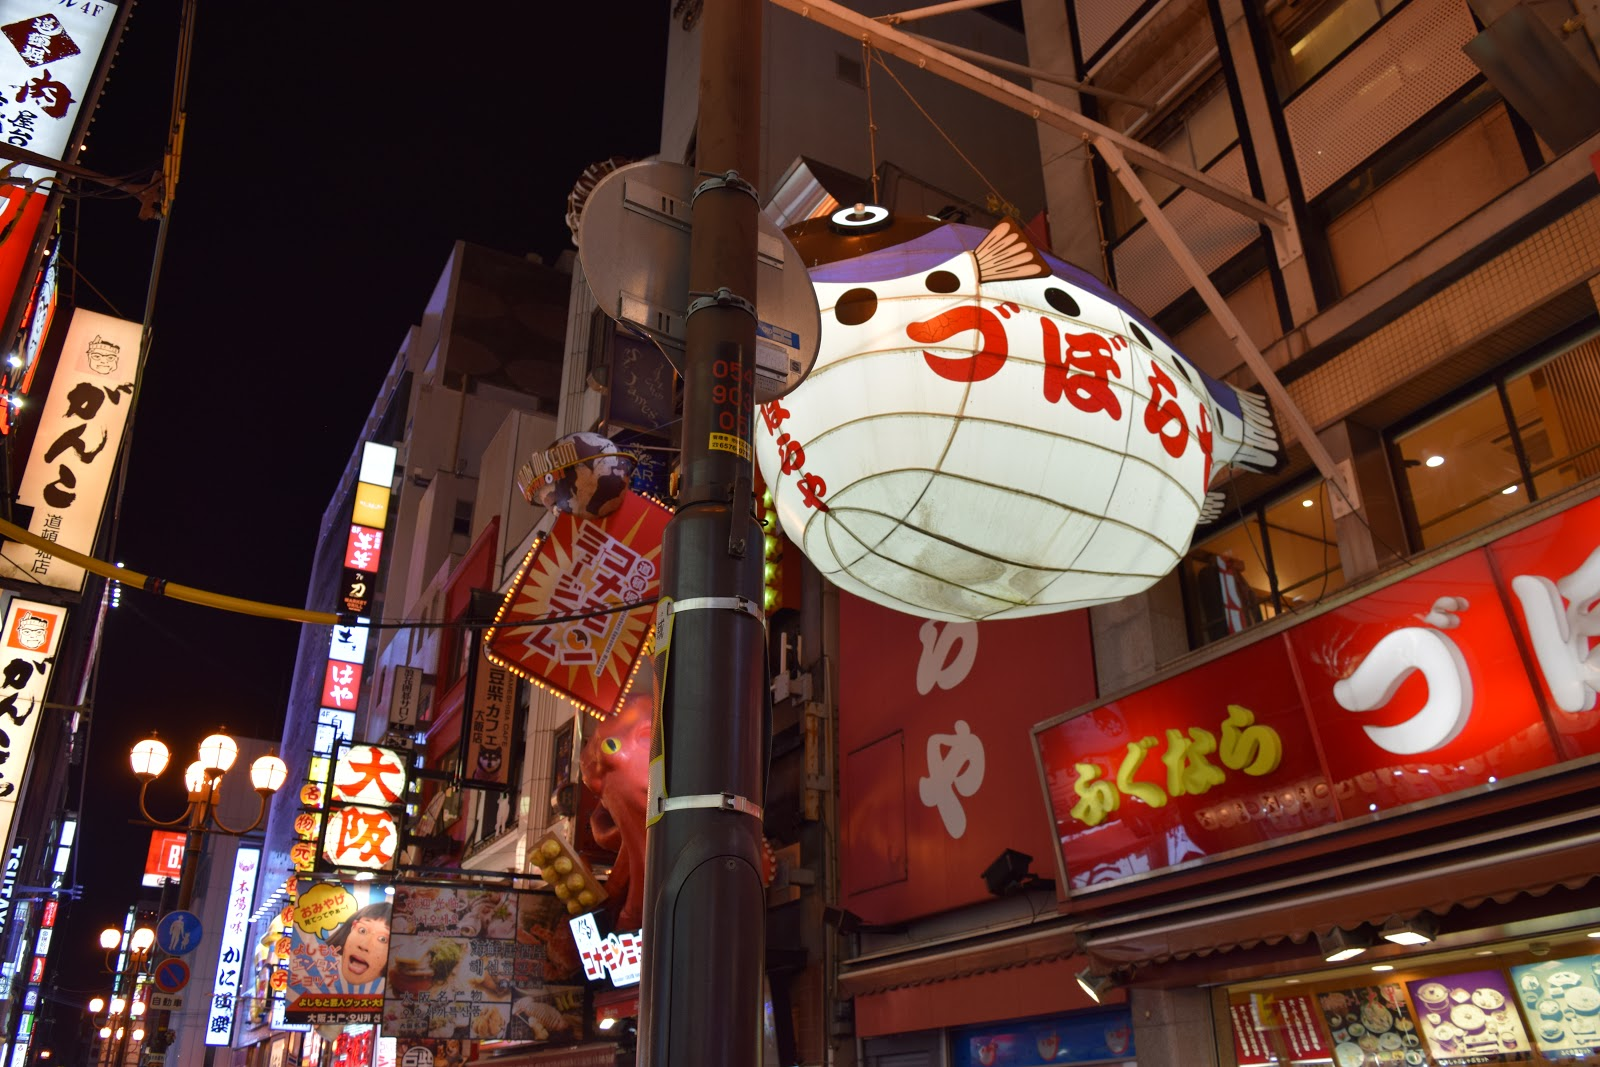 Neon signs and giant puffer fish in Dotombori, Osaka